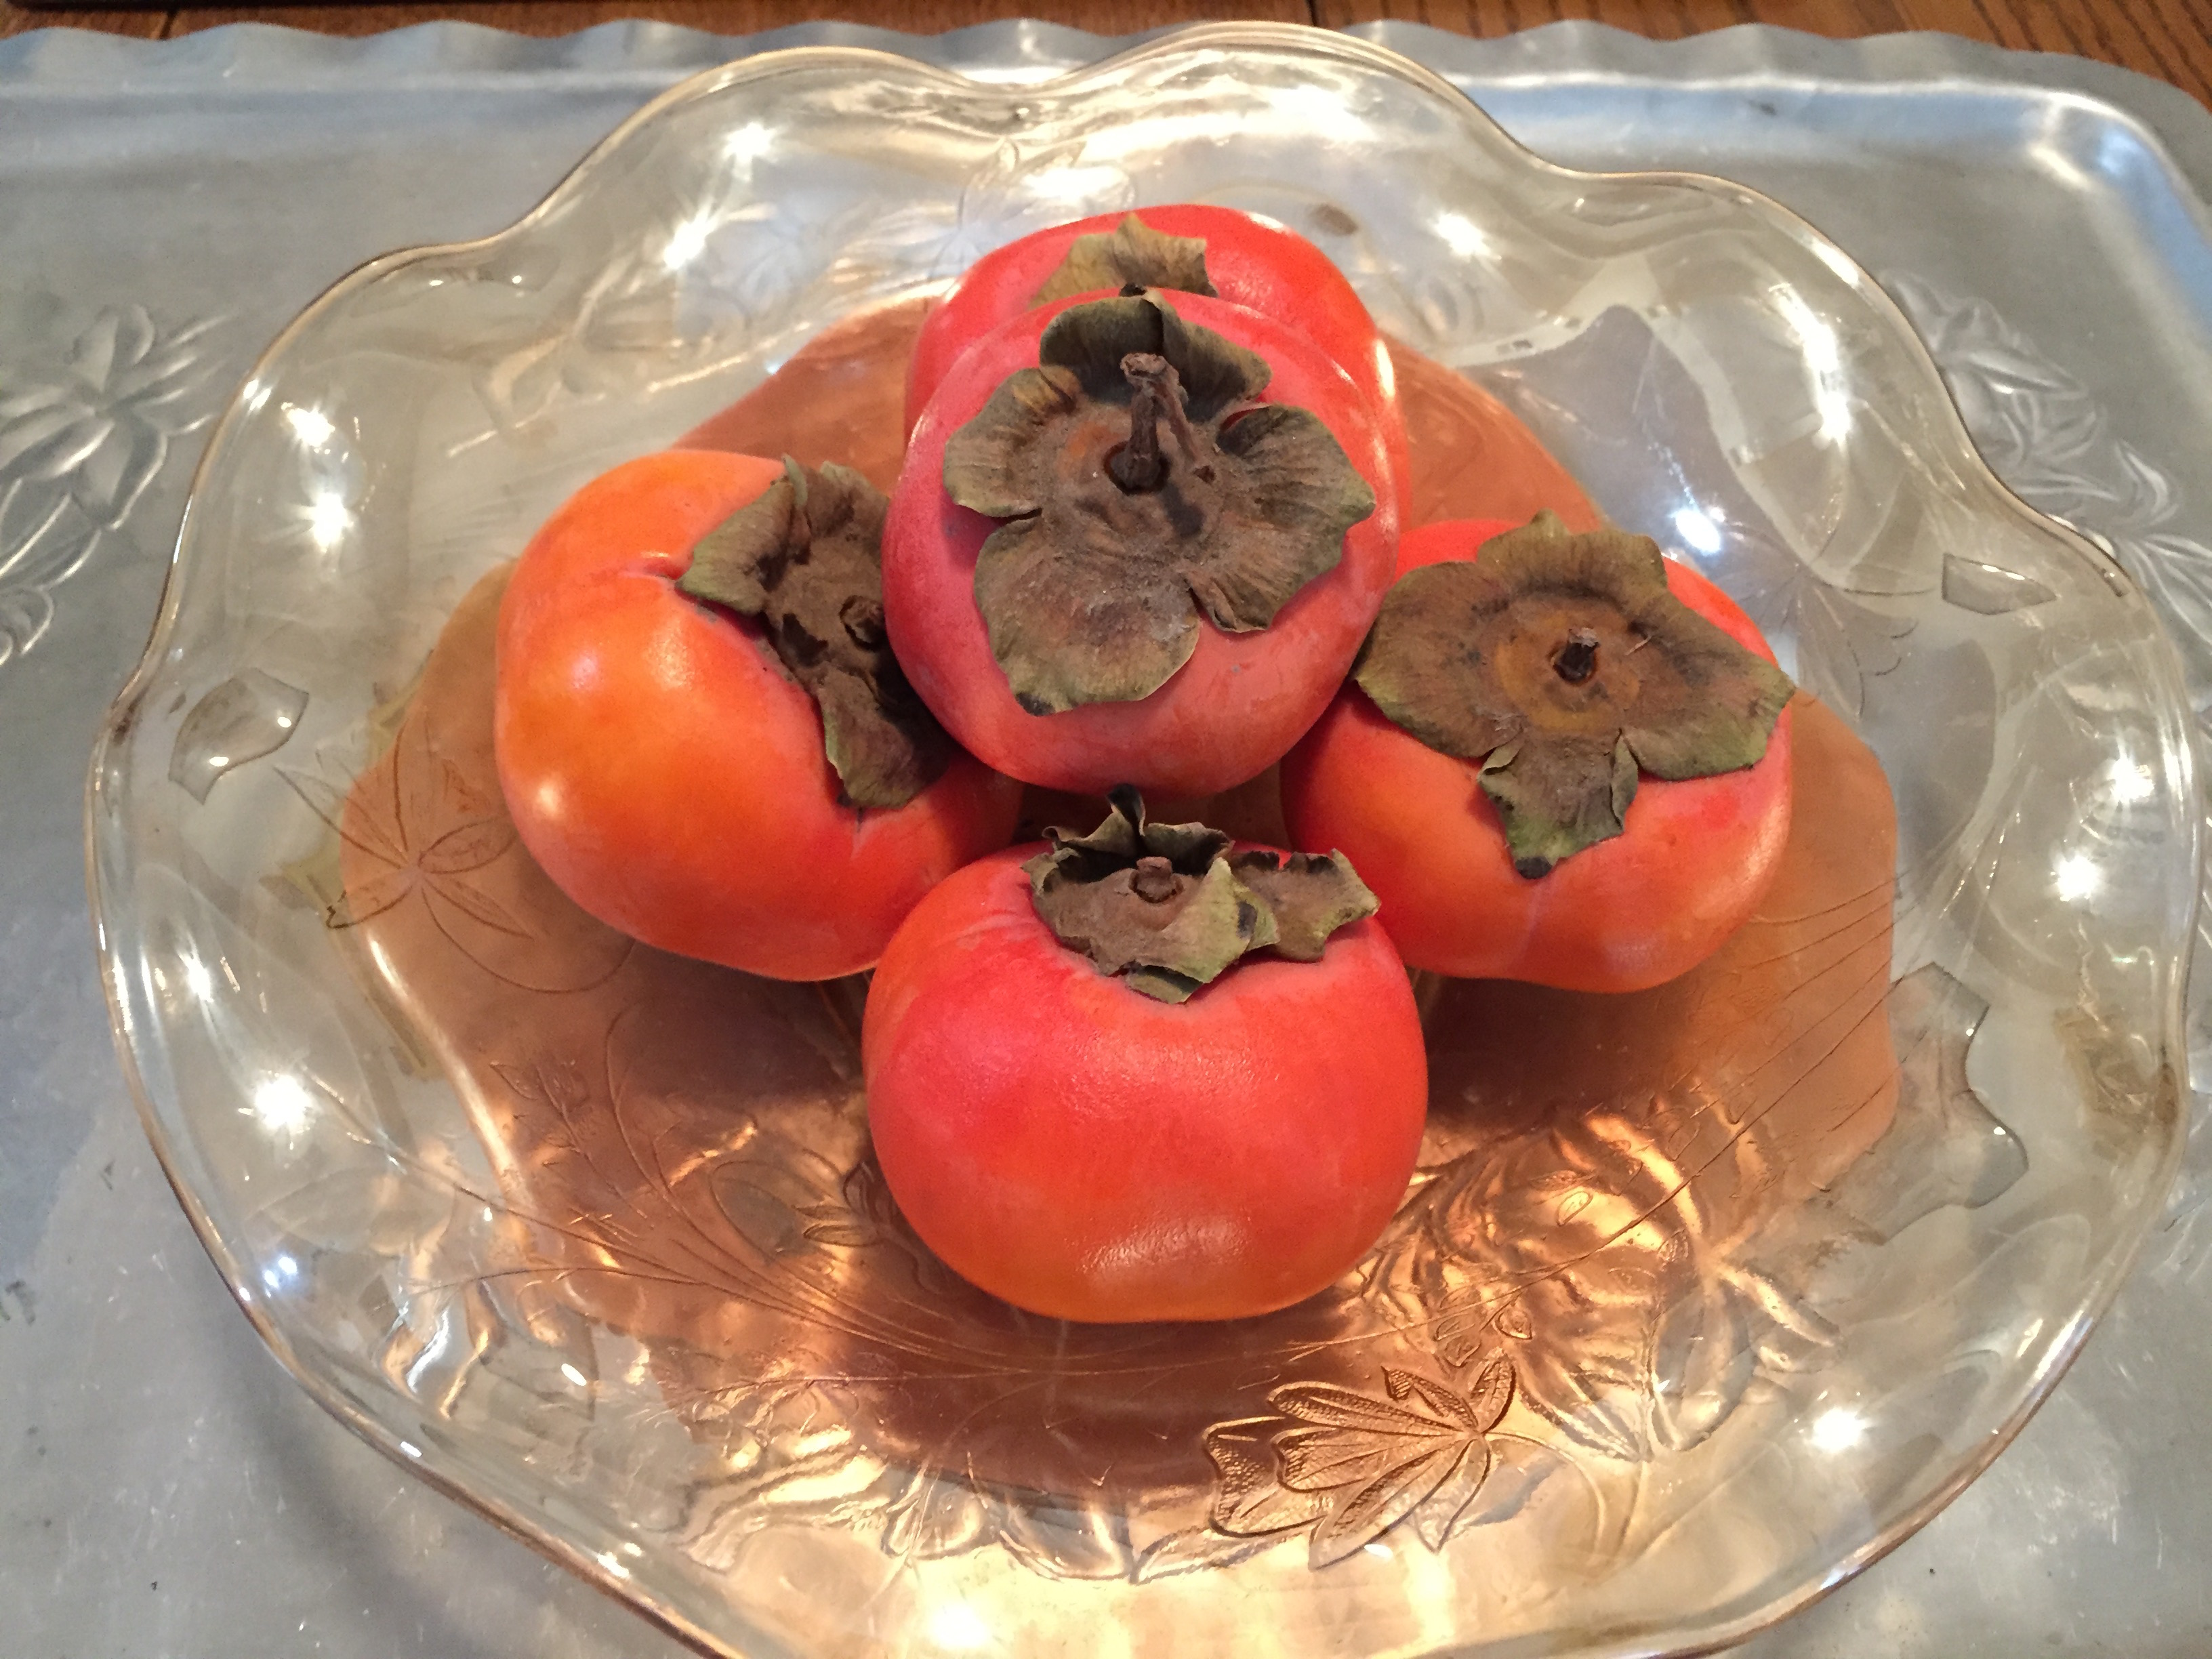 Fuyu persimmons in bowl. (photo by Anne)